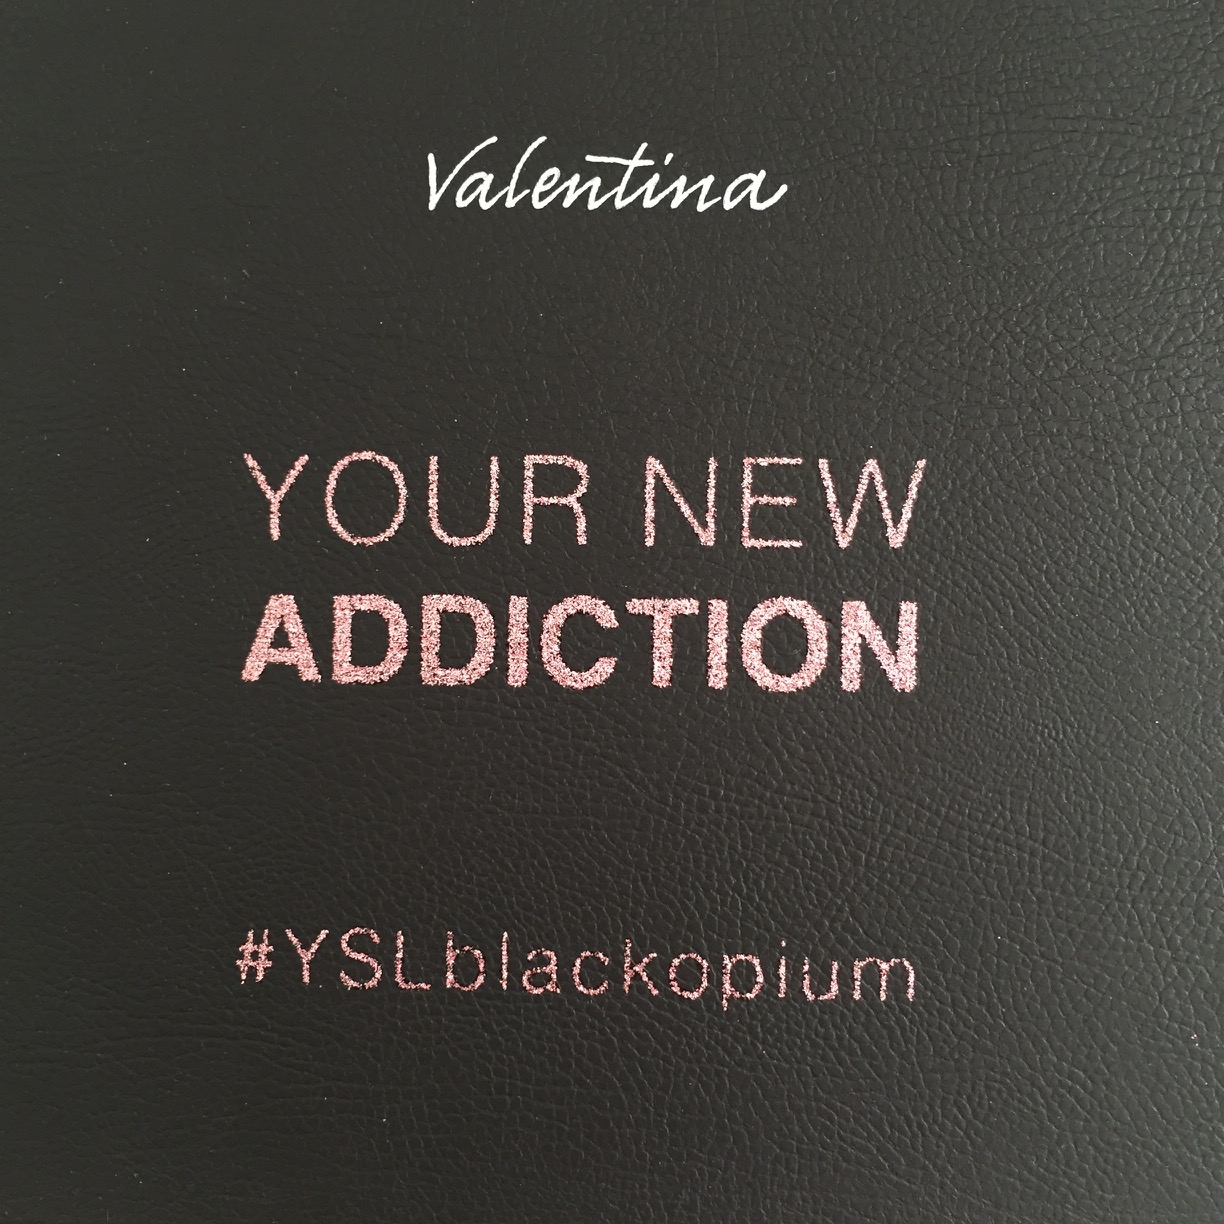 YSL Black Opium Eau de Toilette on Fashion and Cookies fashion and beauty blog